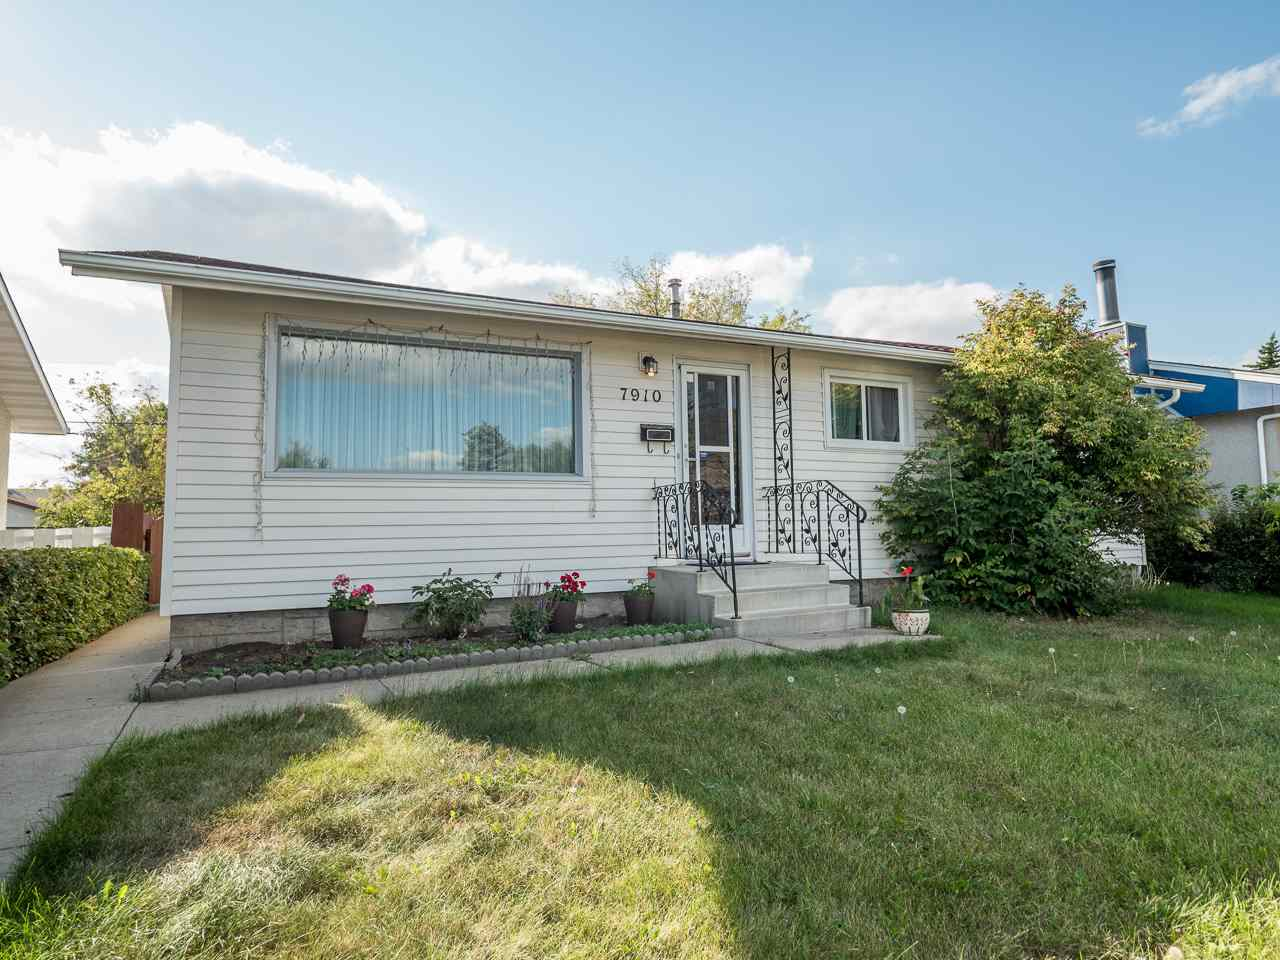 Main Photo: 7910 159 Street in Edmonton: Zone 22 House for sale : MLS® # E4079901